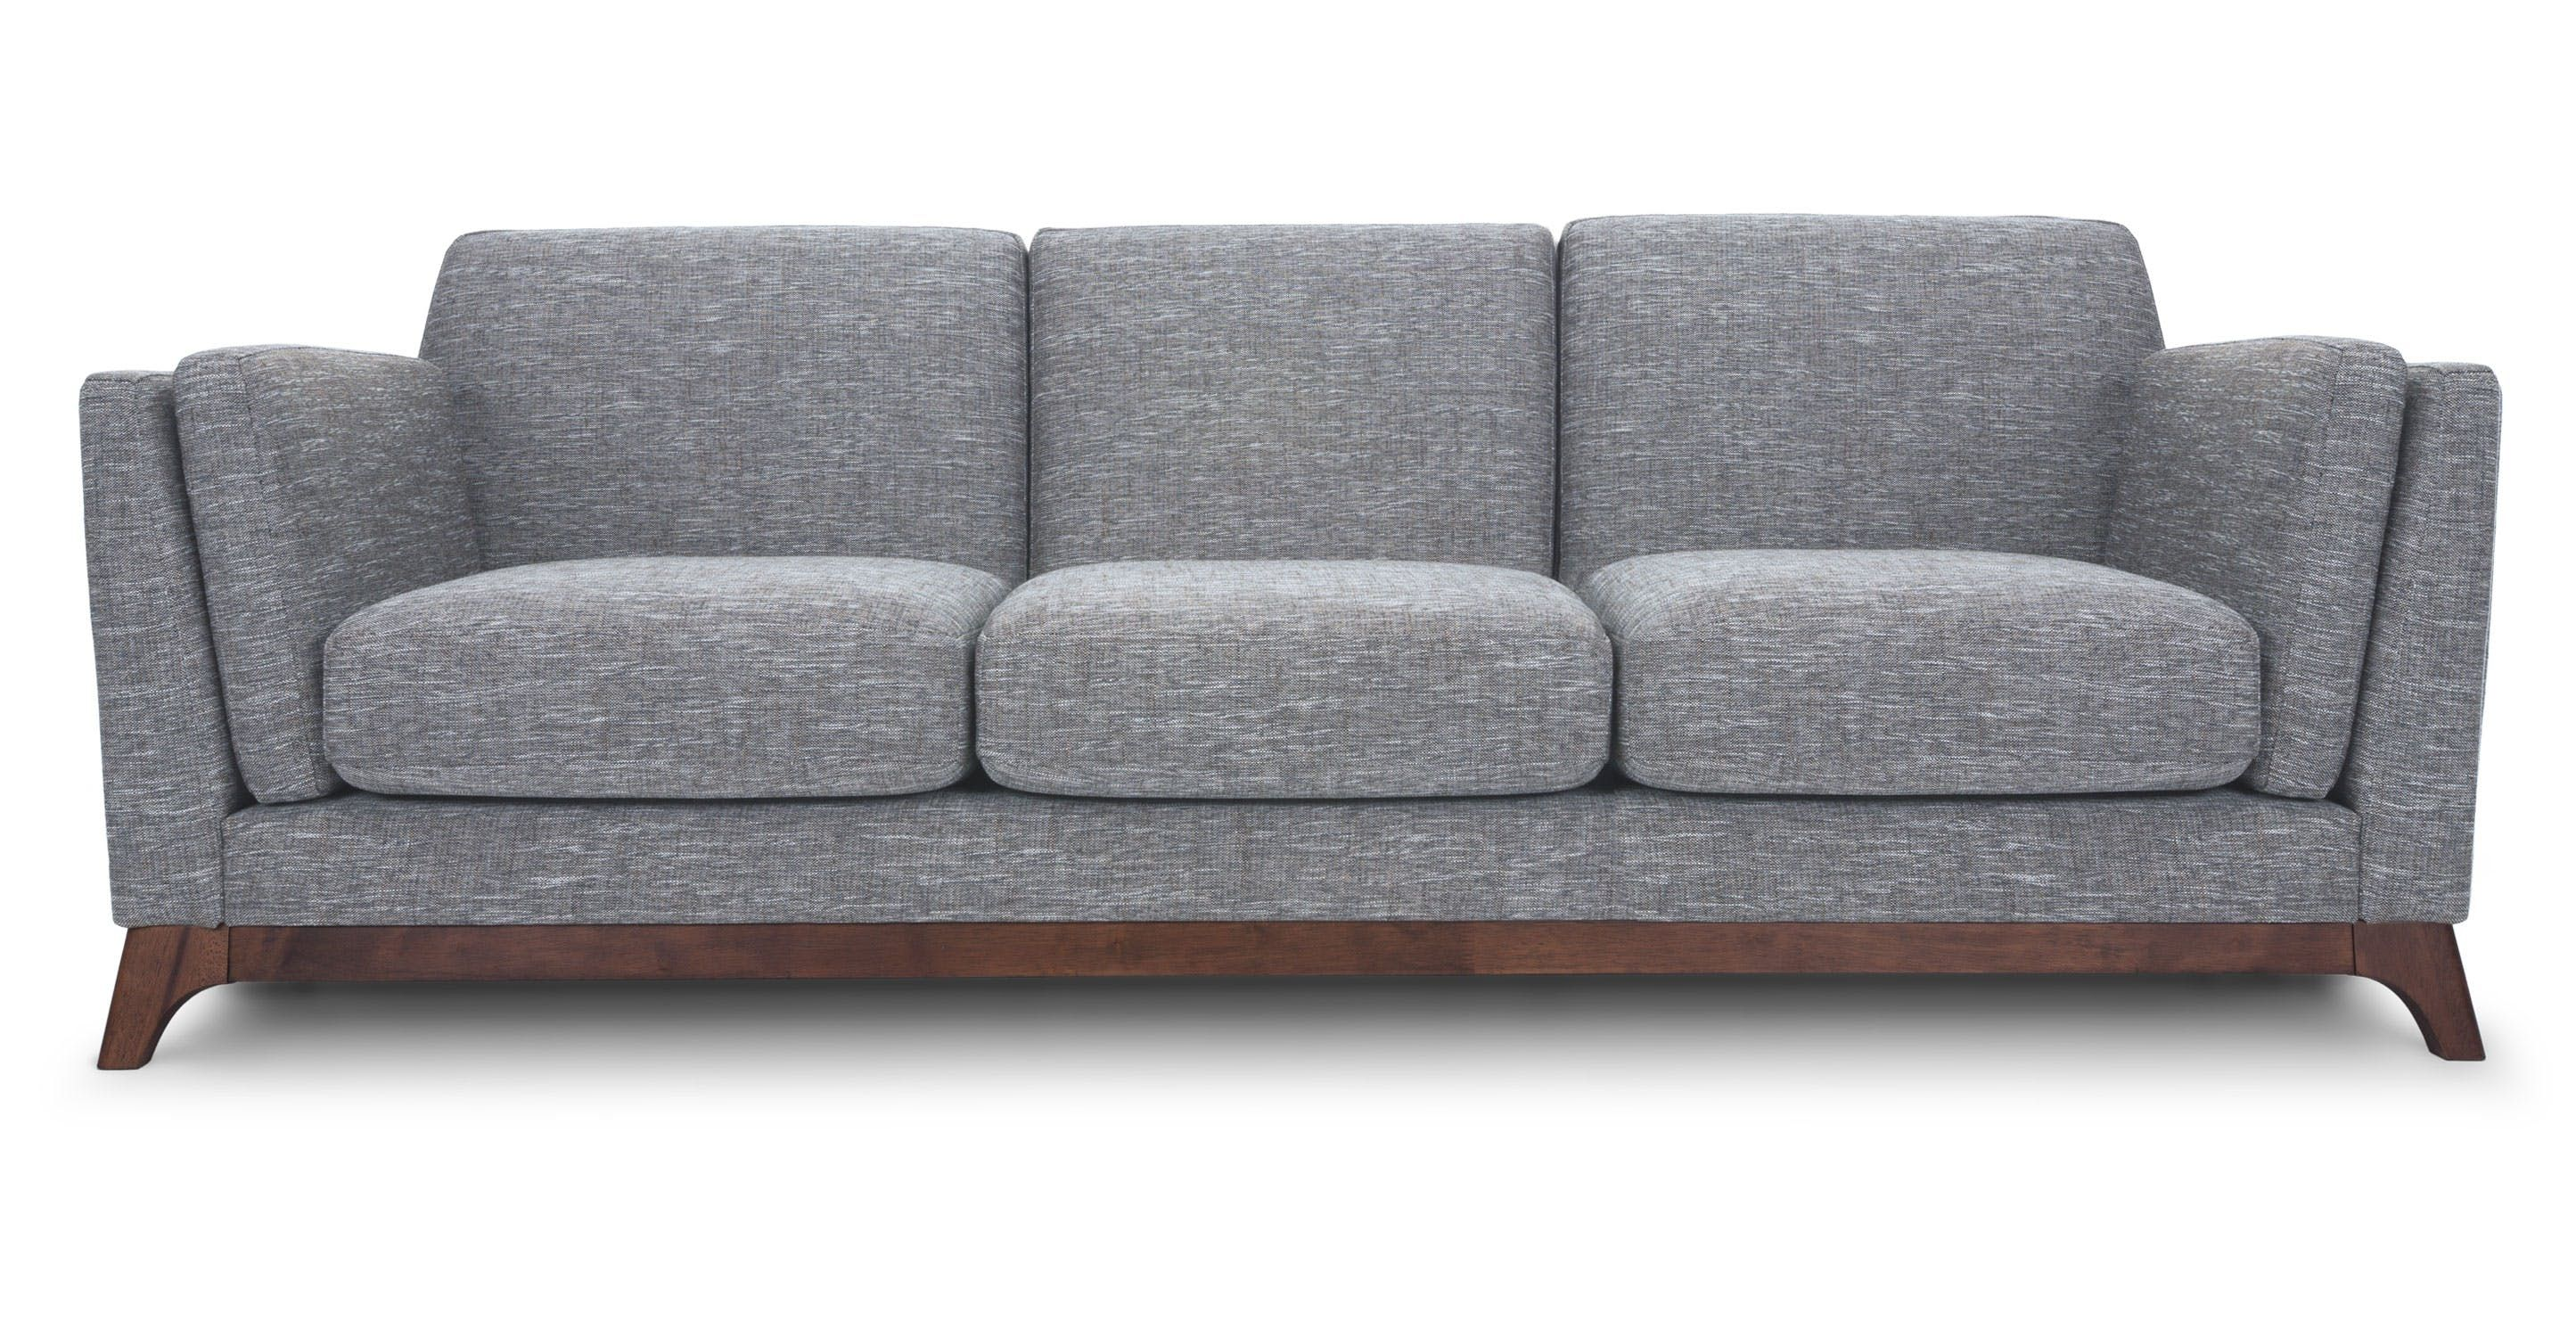 Reviewed The Most Comfortable Sofas At Article